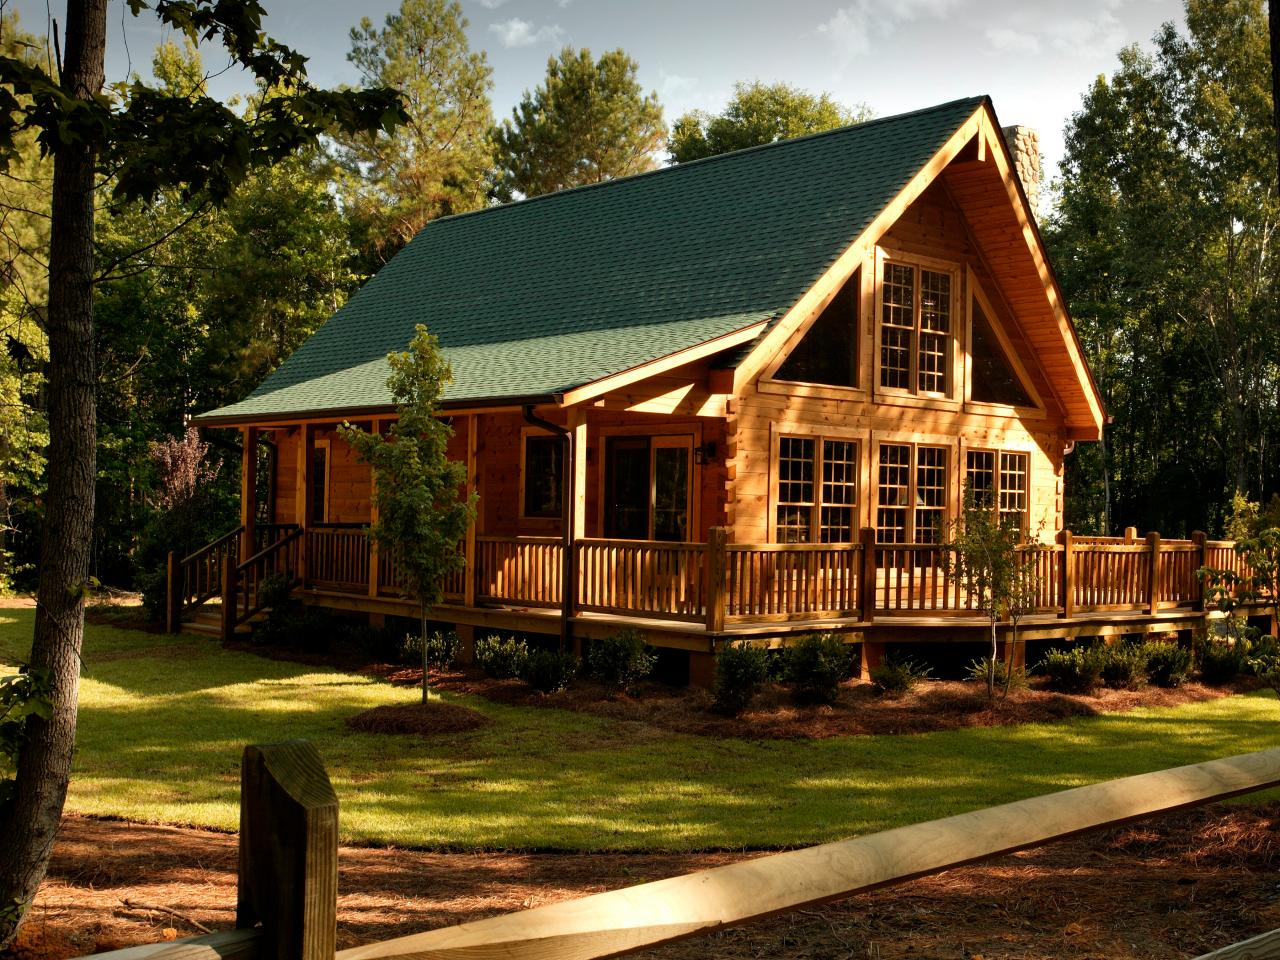 Dream Log Homes | DIY Network Blog Cabin 2010 | DIY